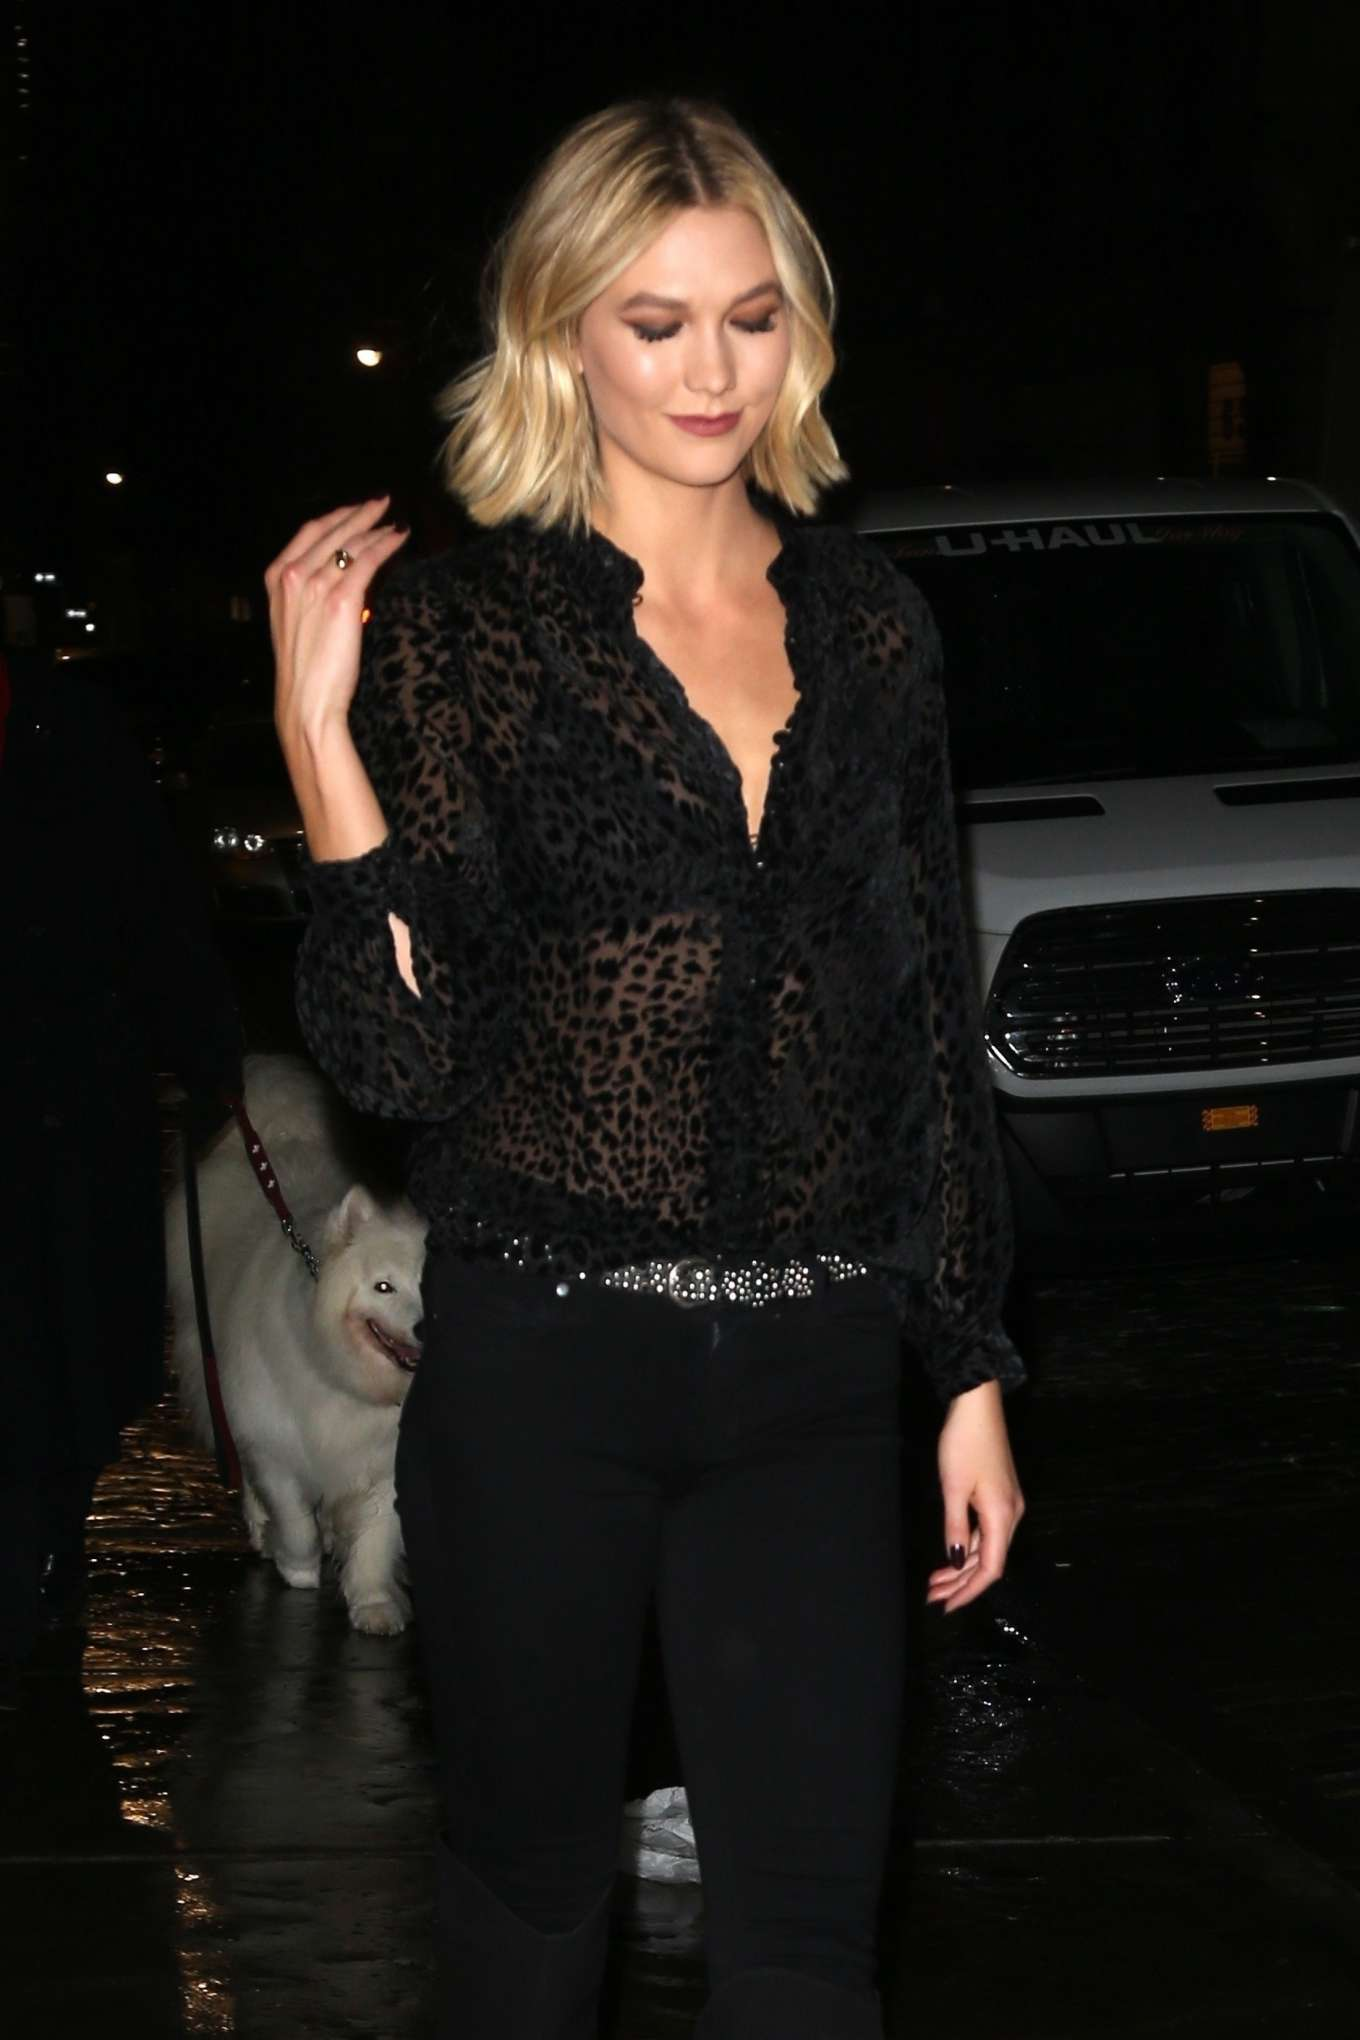 Karlie Kloss in Black - Out in New York City